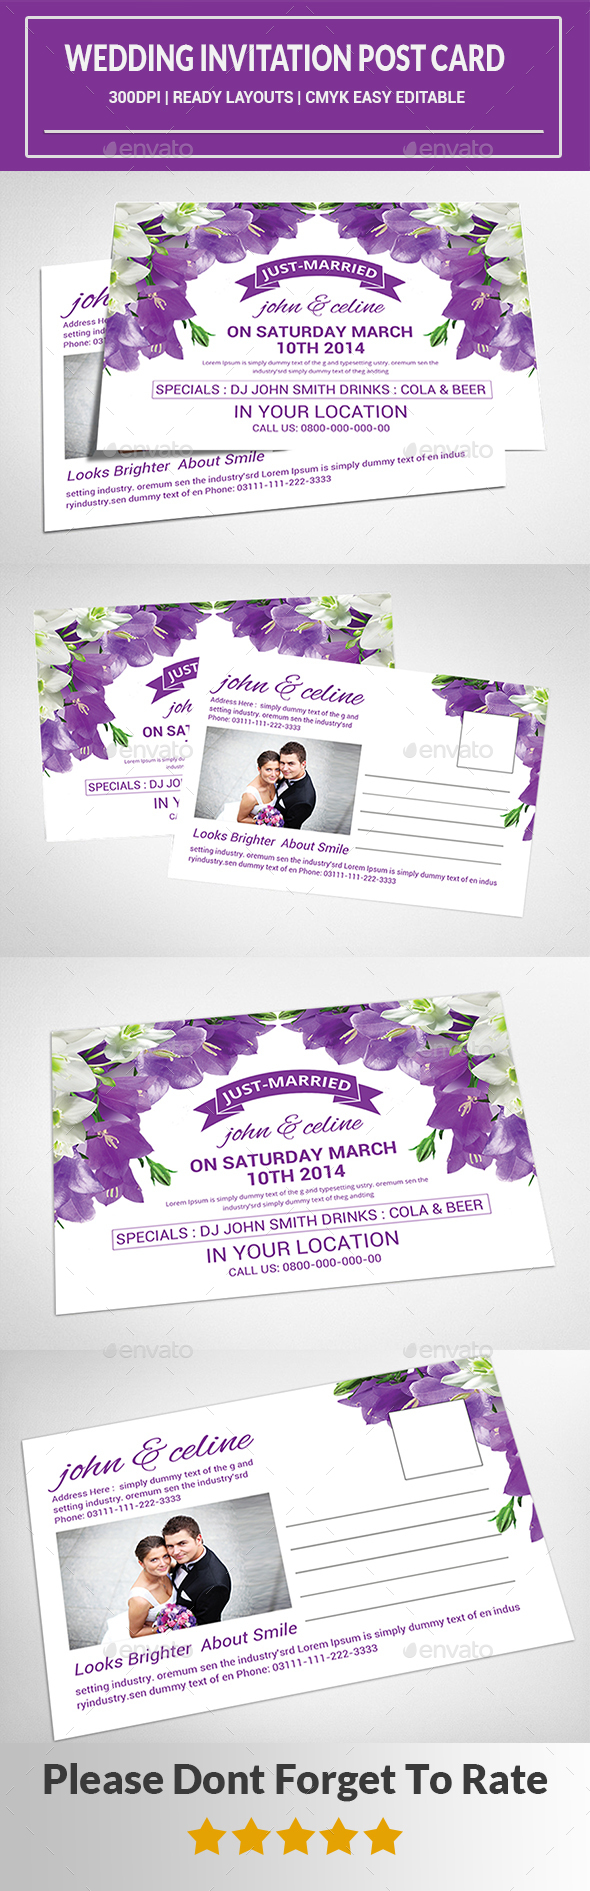 Wedding Invitation Post Card  - Cards & Invites Print Templates